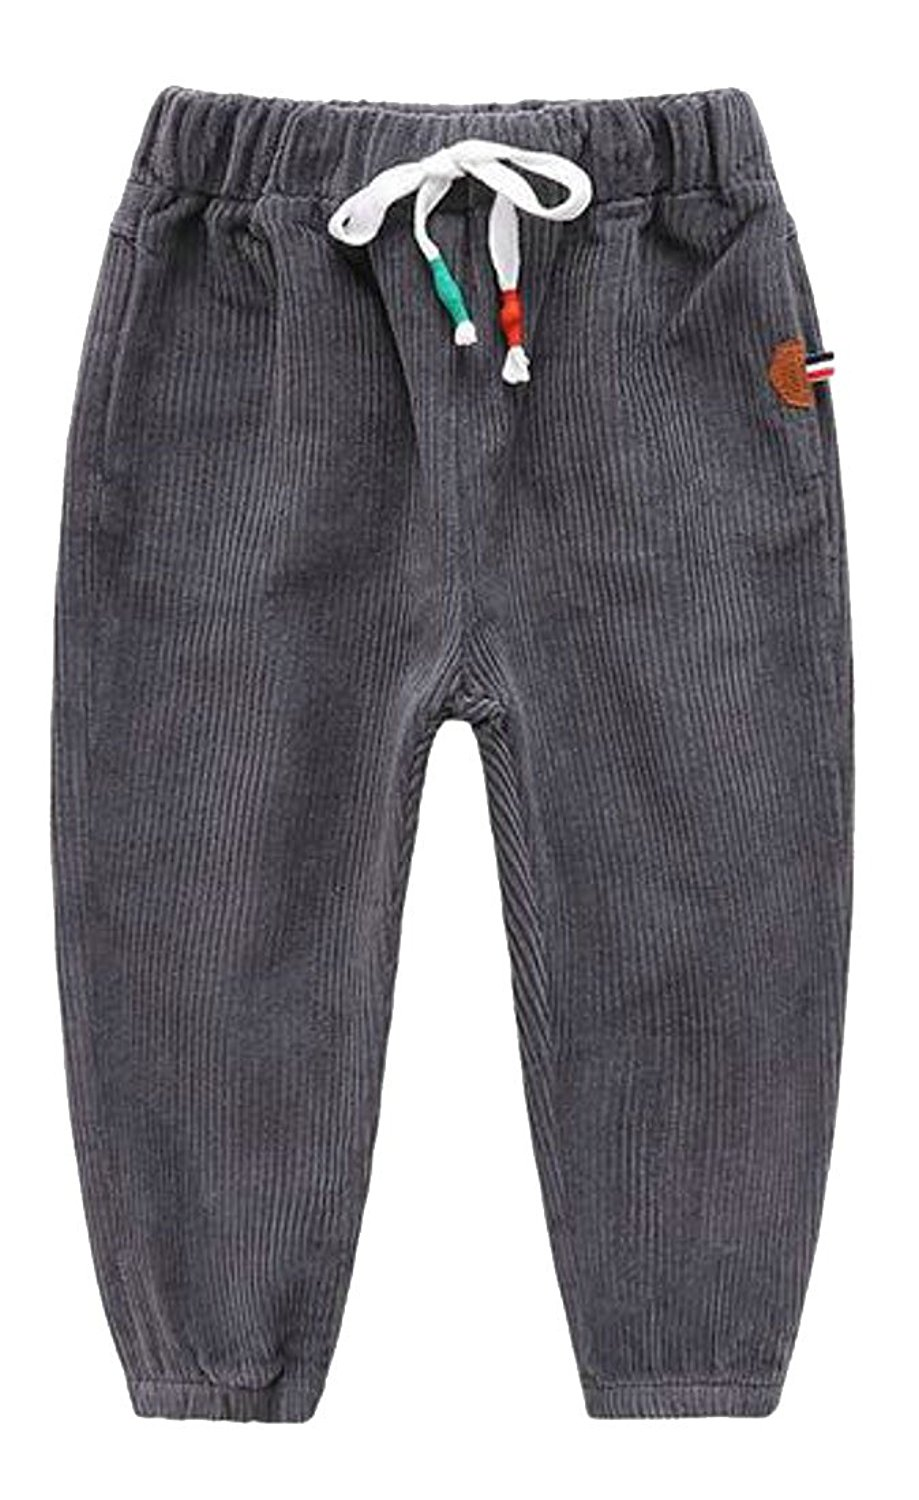 4a562ebaa884 Get Quotations · Cromoncent Boys  Winter Corduroy Elastic Waist Drawstring  Joggers Pants Dark Grey 6T